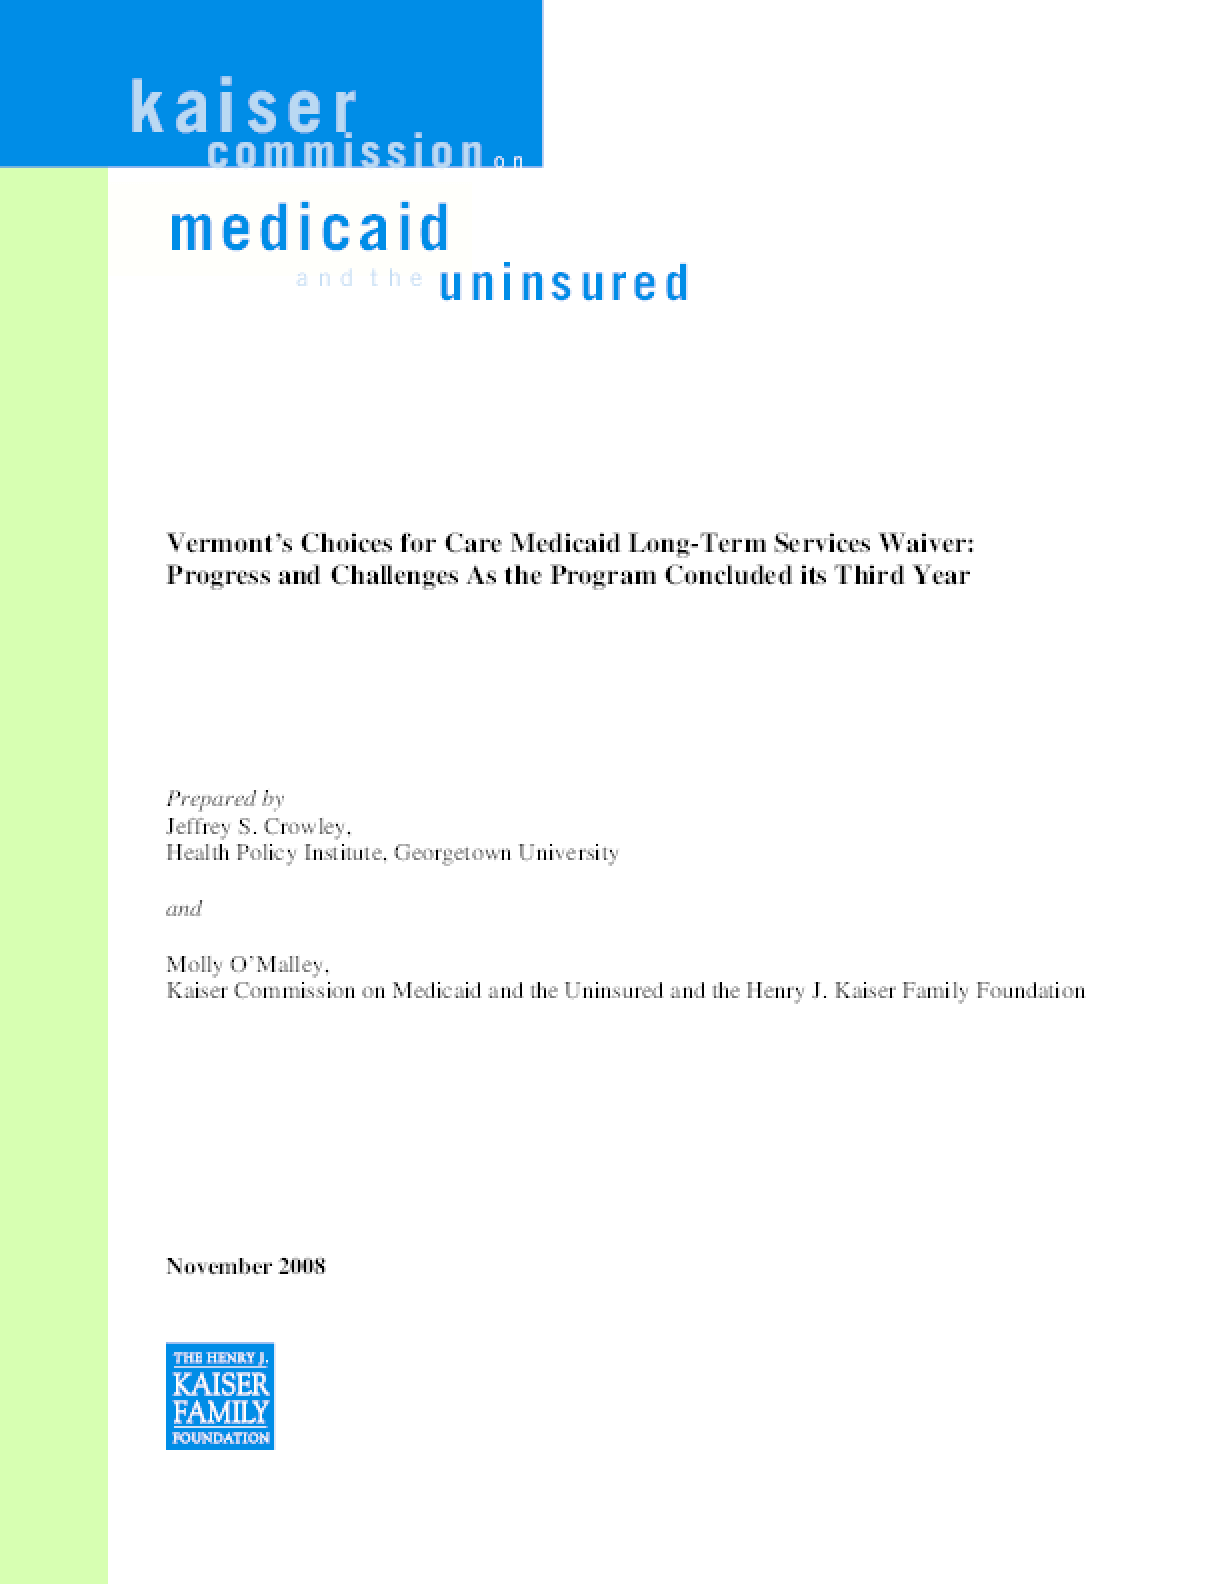 Vermont's Choices for Care Medicaid Long-Term Services Waiver: Progress and Challenges as the Program Concluded Its Third Year